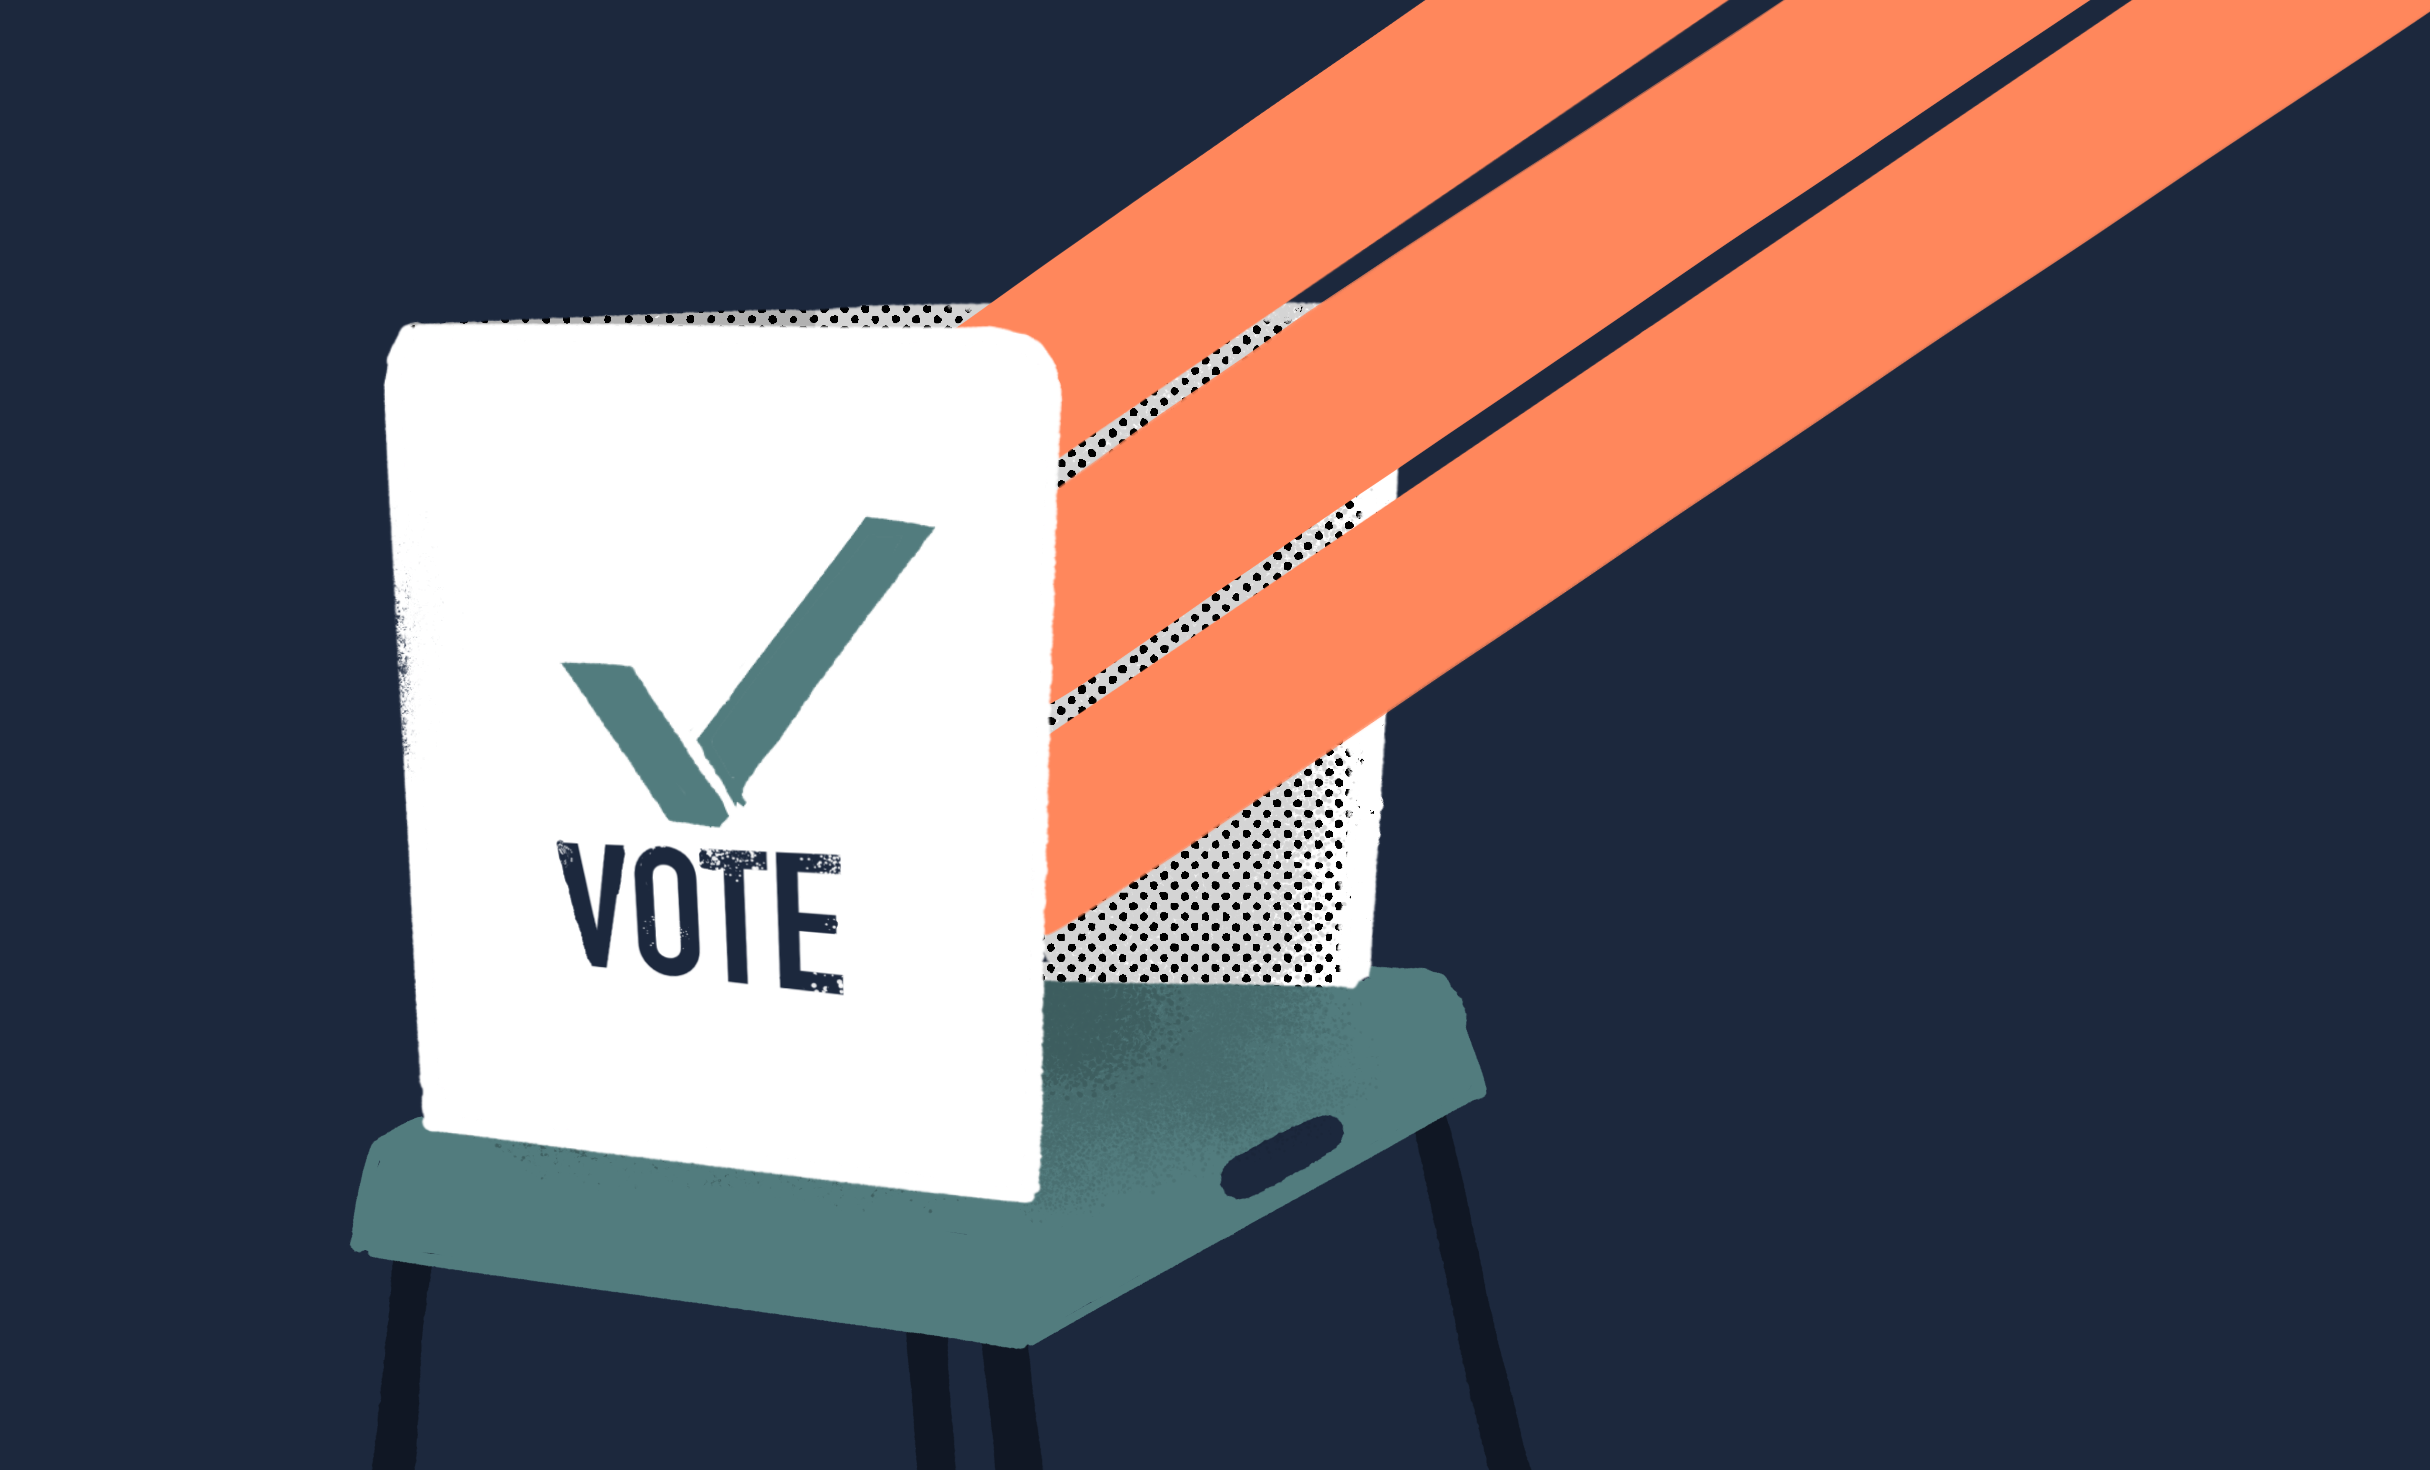 A voting privacy shield with three orange beams eminating out.